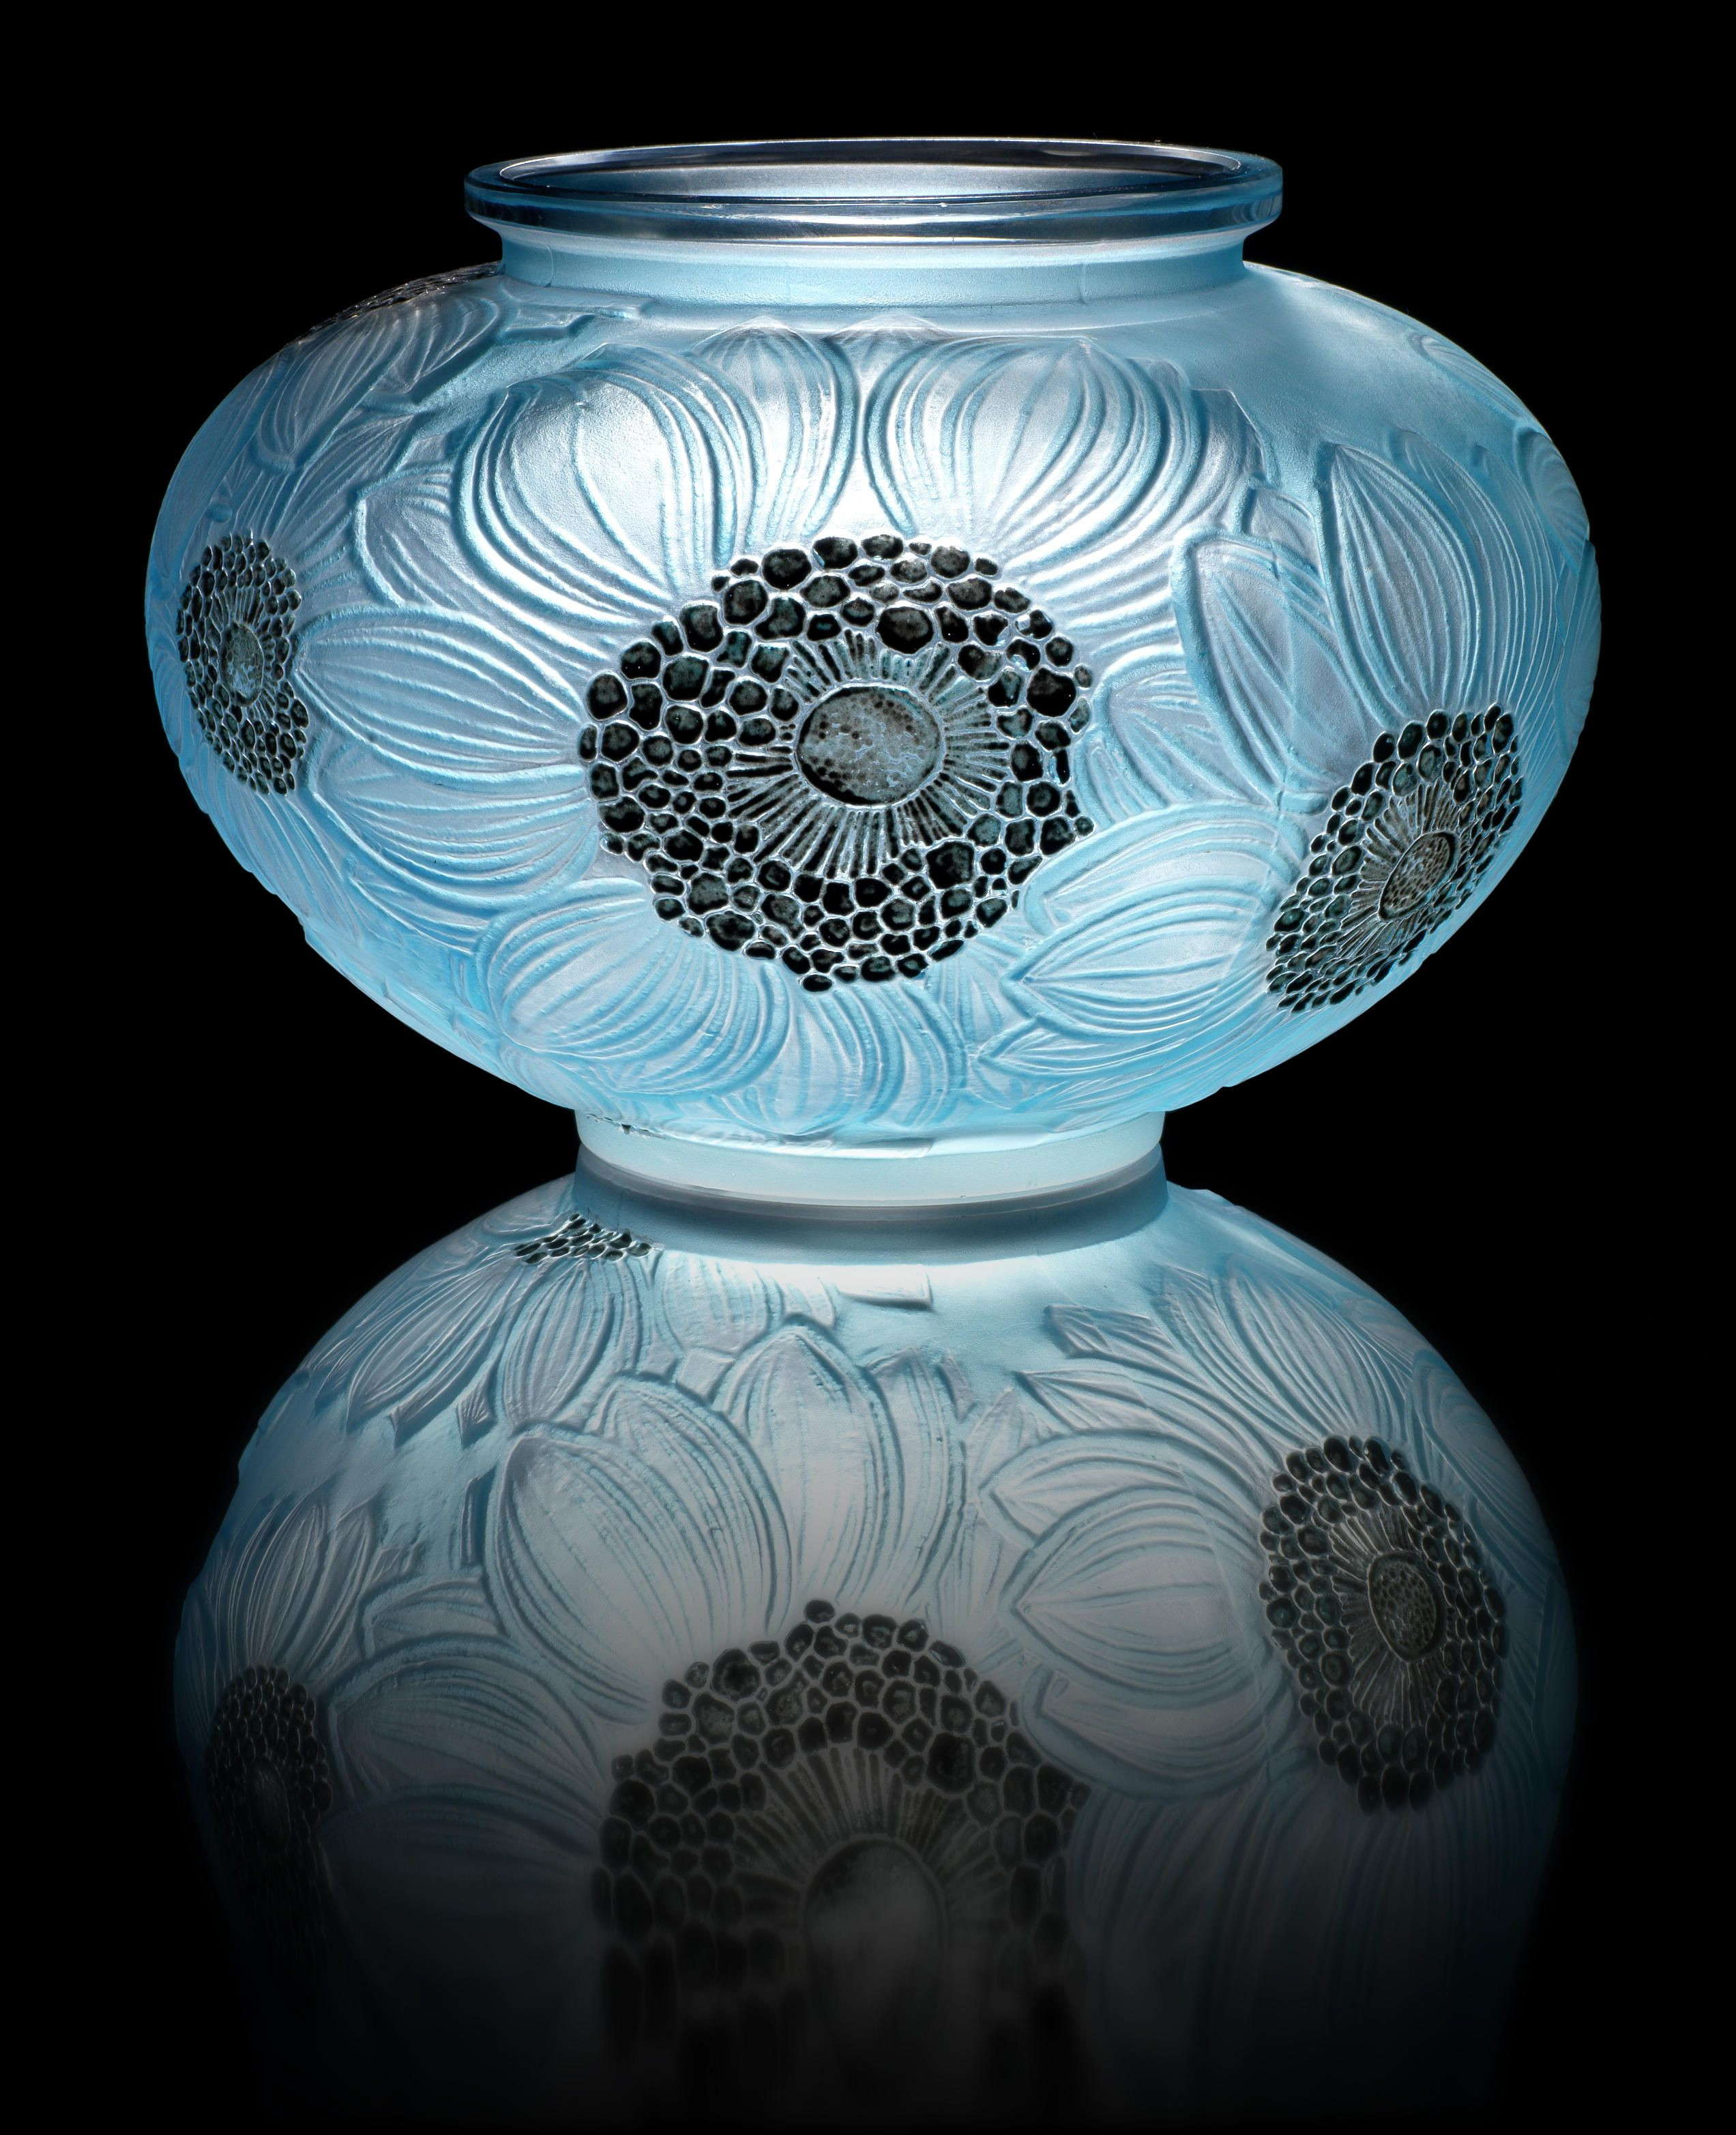 Lalique Dove Vase Of Rena Lalique Dahlias A Vase Design 1923 Frosted Glass Heightened In Rena Lalique Dahlias A Vase Design 1923 Frosted Glass Heightened with Blue Staining and Black Enamel 12 4cm High